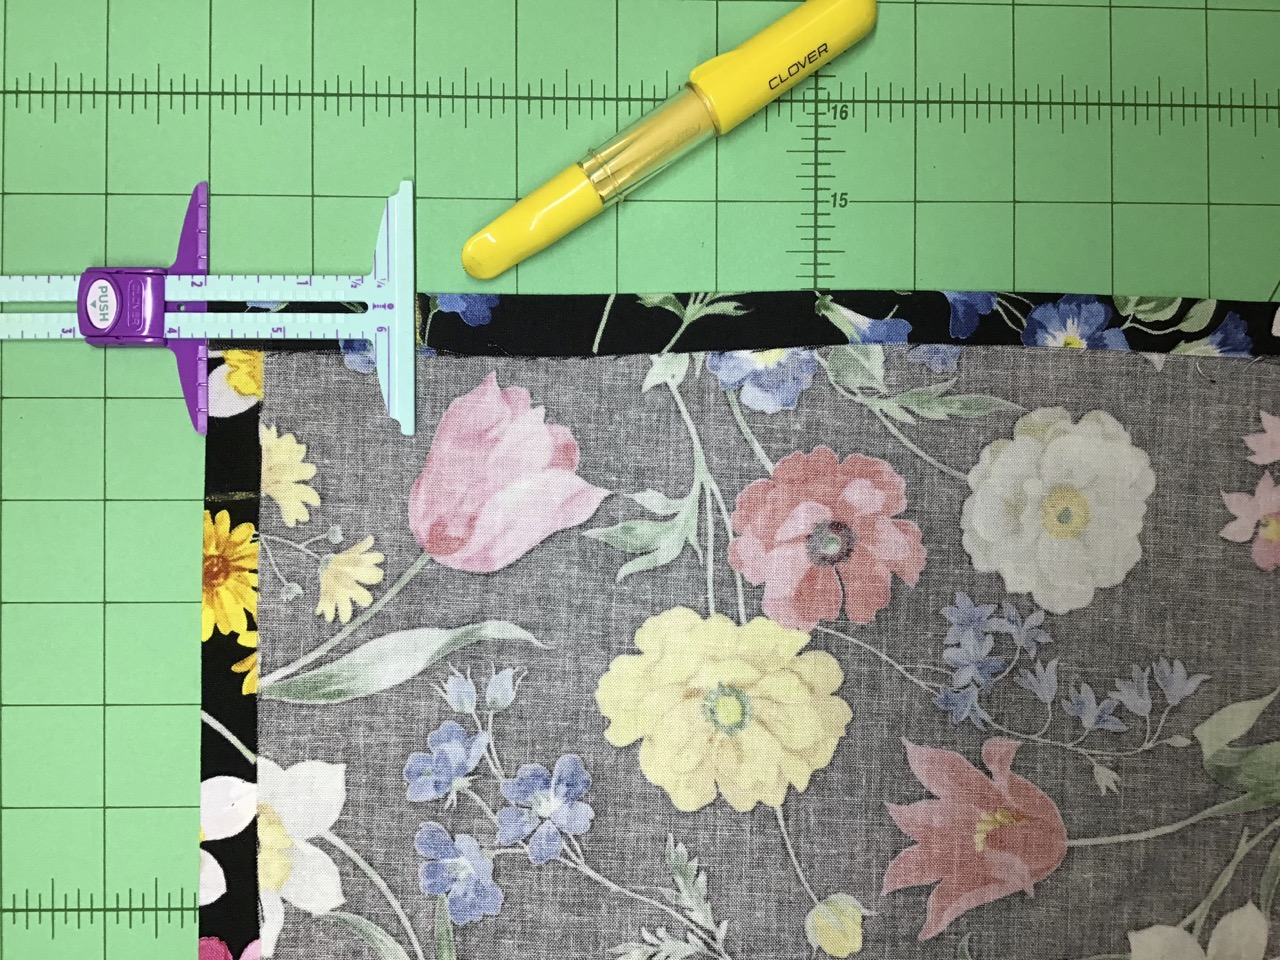 Today at the NZP Blog, we're pleased to announce our NEW! No-Hassle Table Topper how-to sewing video by the Stitch it! Sisters. Join Deanna Springer and Dana Casey as they show how to sew a table runner from just two half-yard fabrics. Learn how to make an easy table runner from two fabric rectangles.